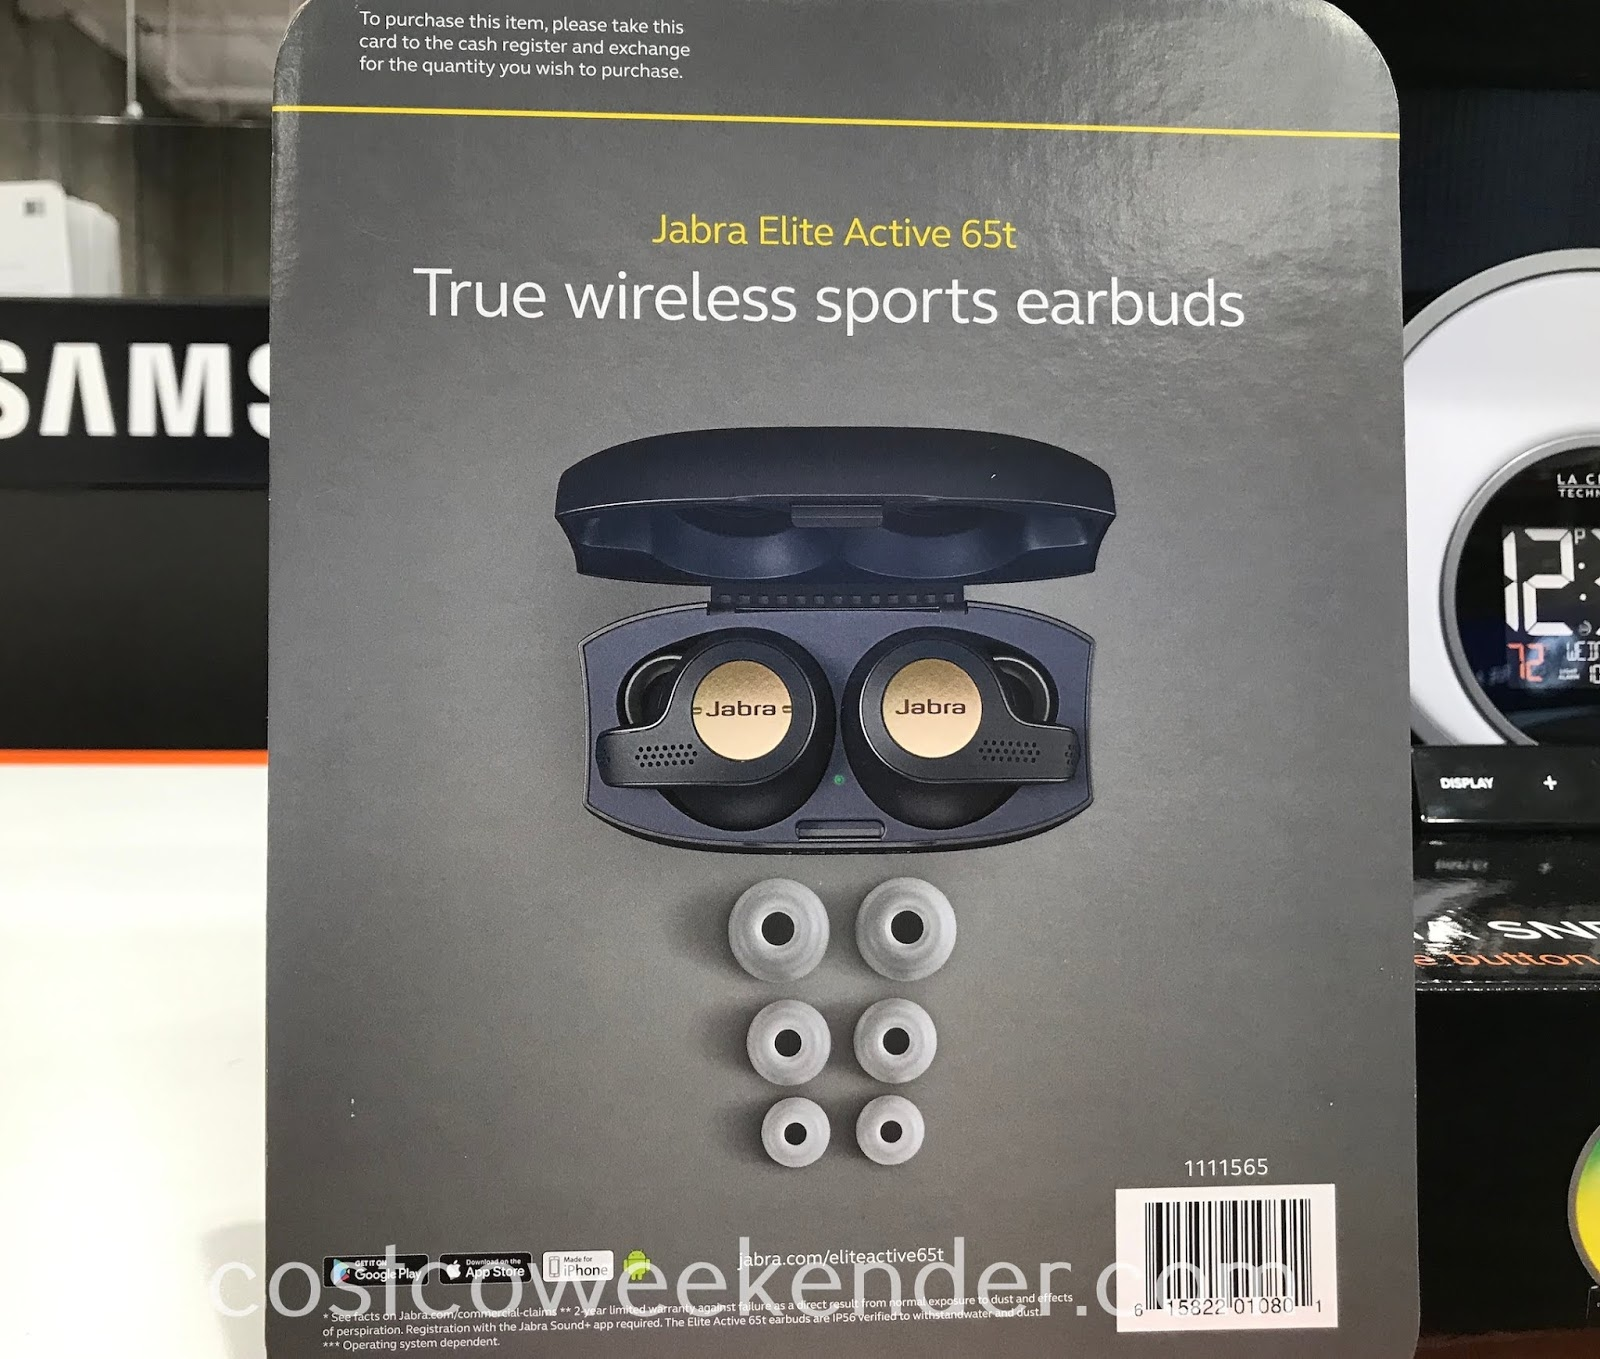 Costco 1111565 - Jabra Elite Active 65T True Wireless Headphones: great for athletes and music lovers alike